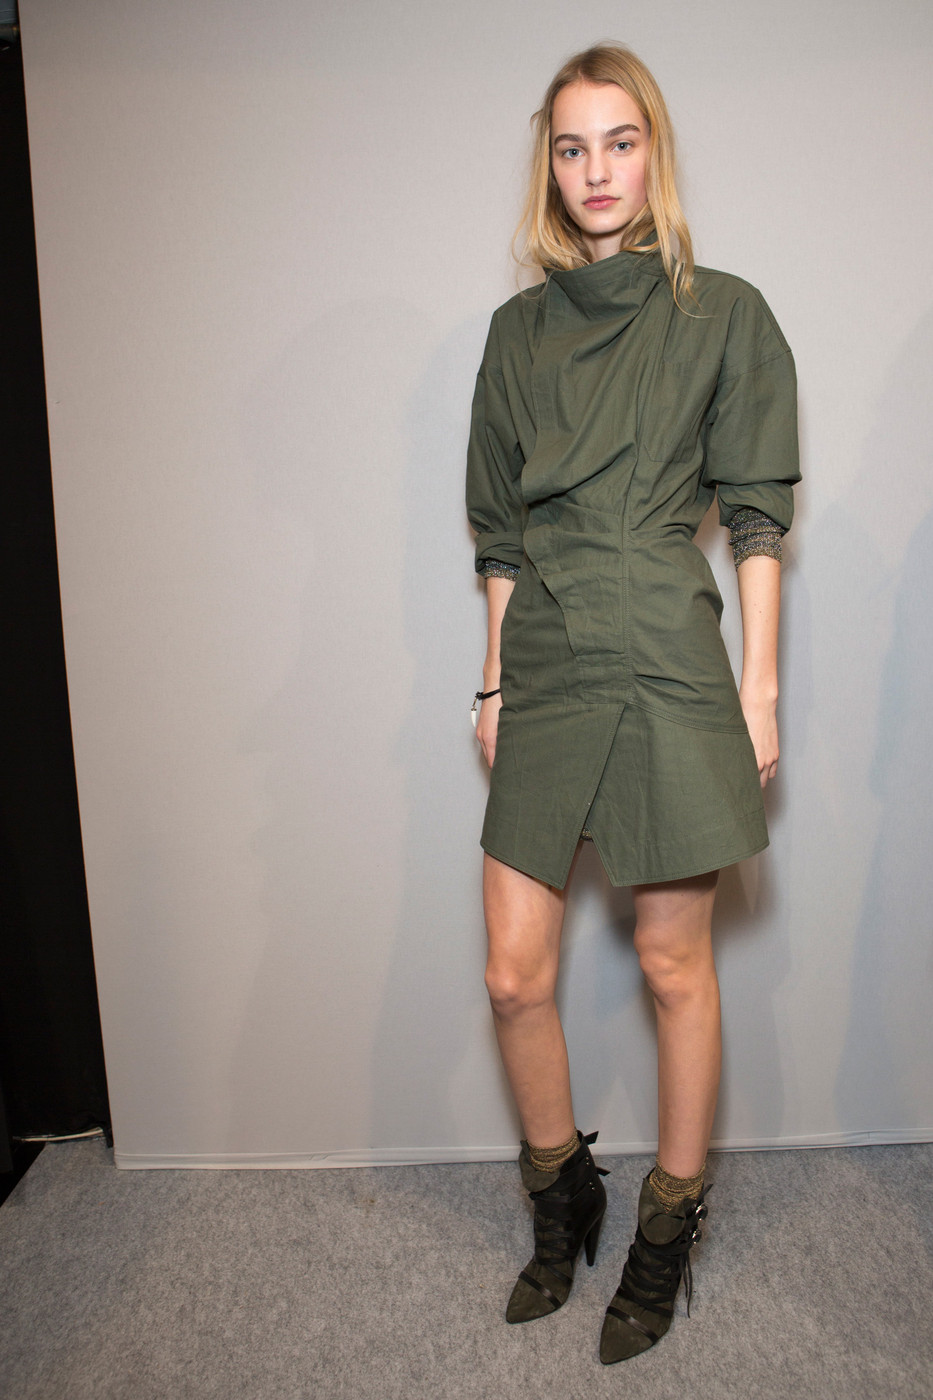 Isabel_Marant_Fall_2014_Backstage_Ns_H5_Dutqf_MXx.jpg